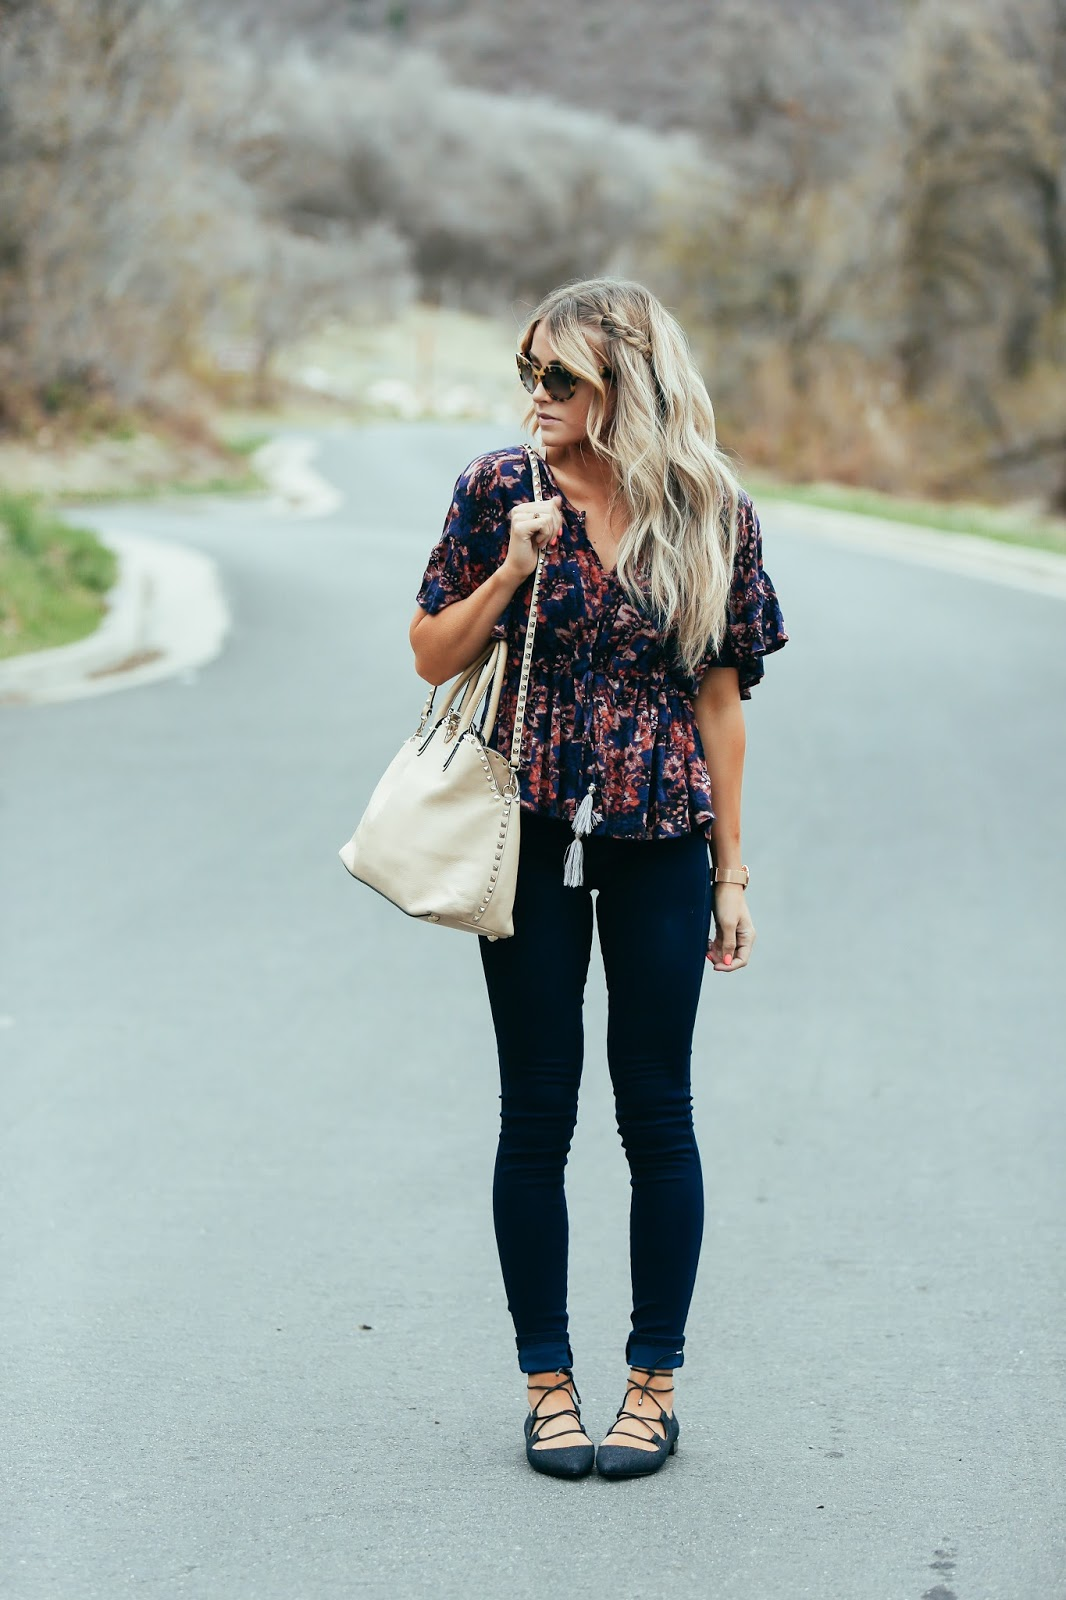 The floral trend is a natural choice for a cute spring outfit! Cara Loren is wearing a beautiful floral printed blouse with jeans and strappy flat sandals to create an easygoing summer vibe. Top/Jeans: Shopbop, Shoes: DSW.